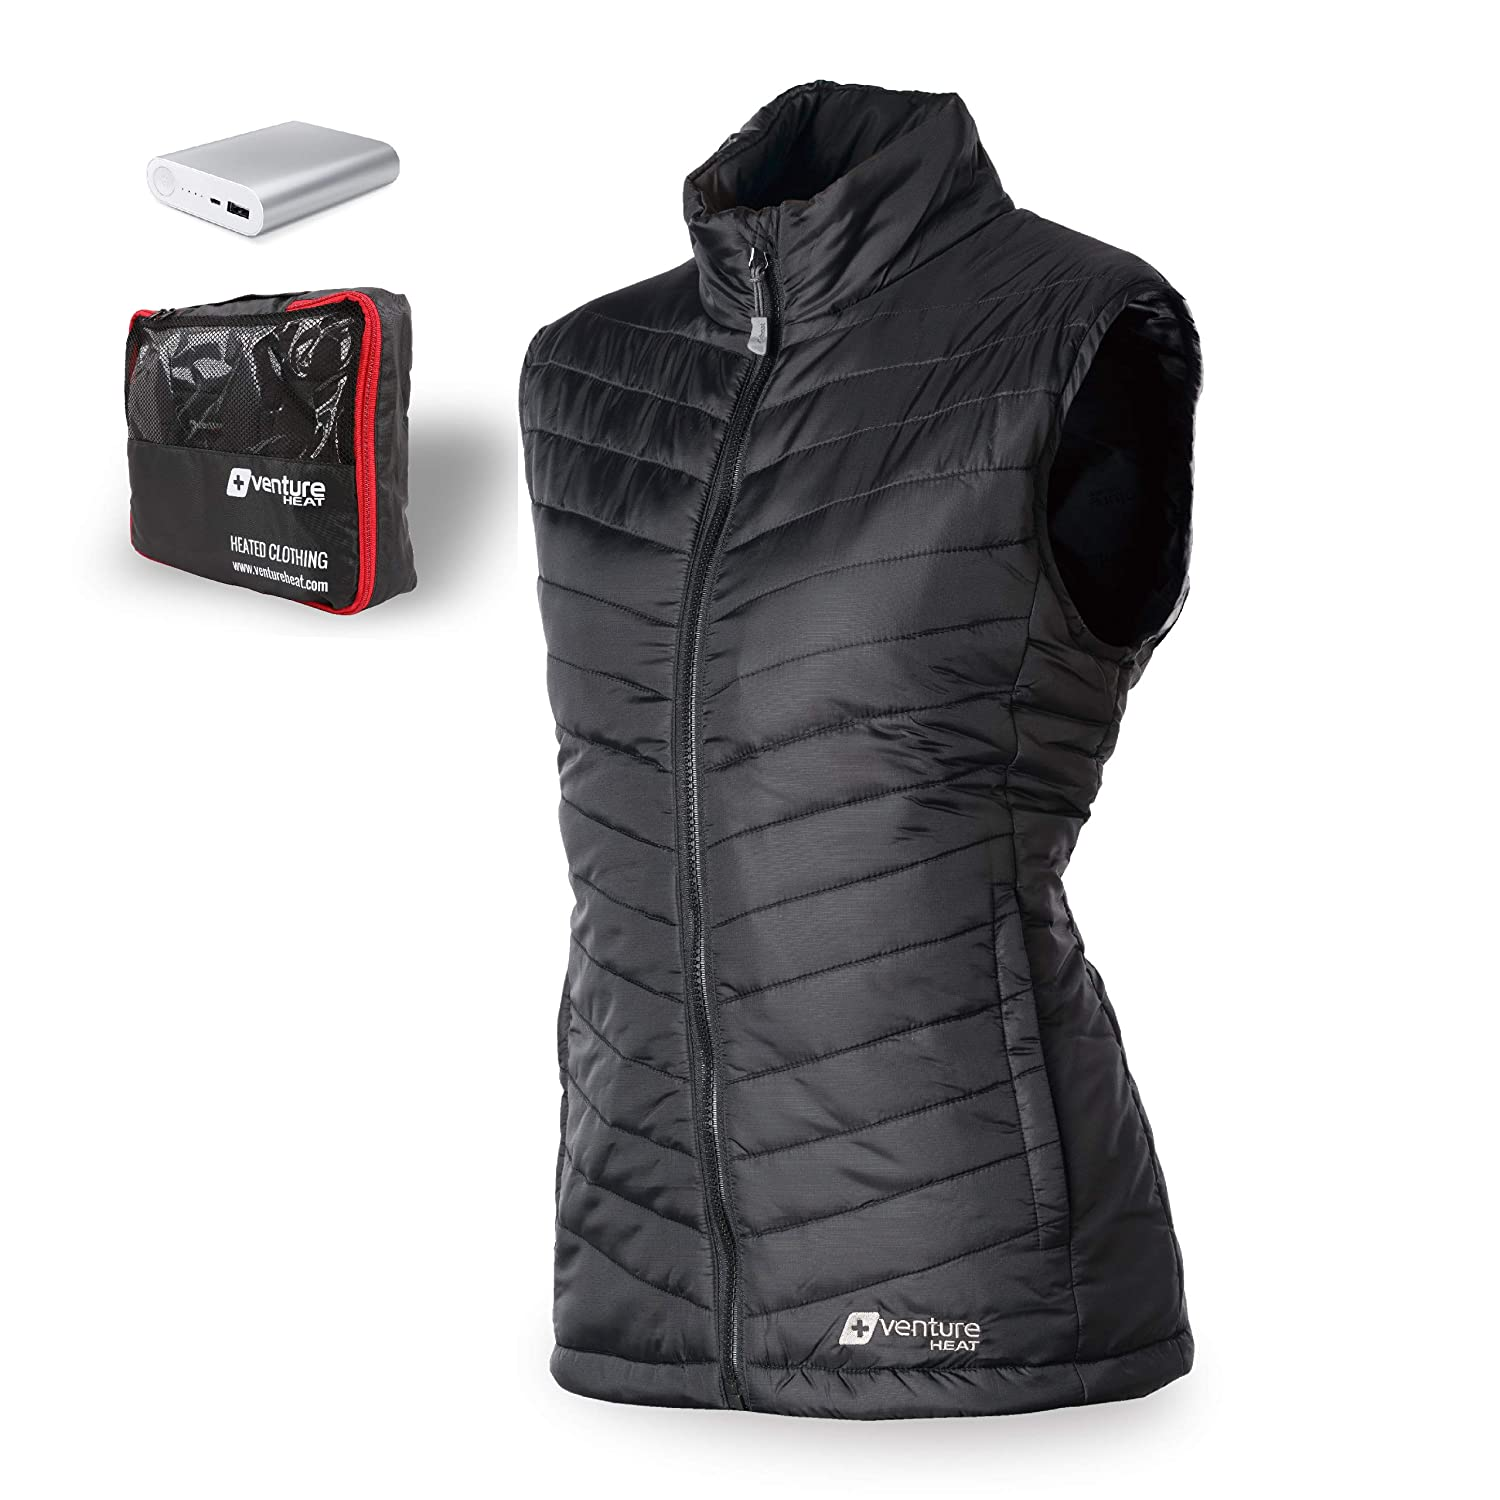 3d262df65 Venture Heat Women's Heated Vest with Battery 12 Hour - The Roam Puffer  Heated Vest for Women